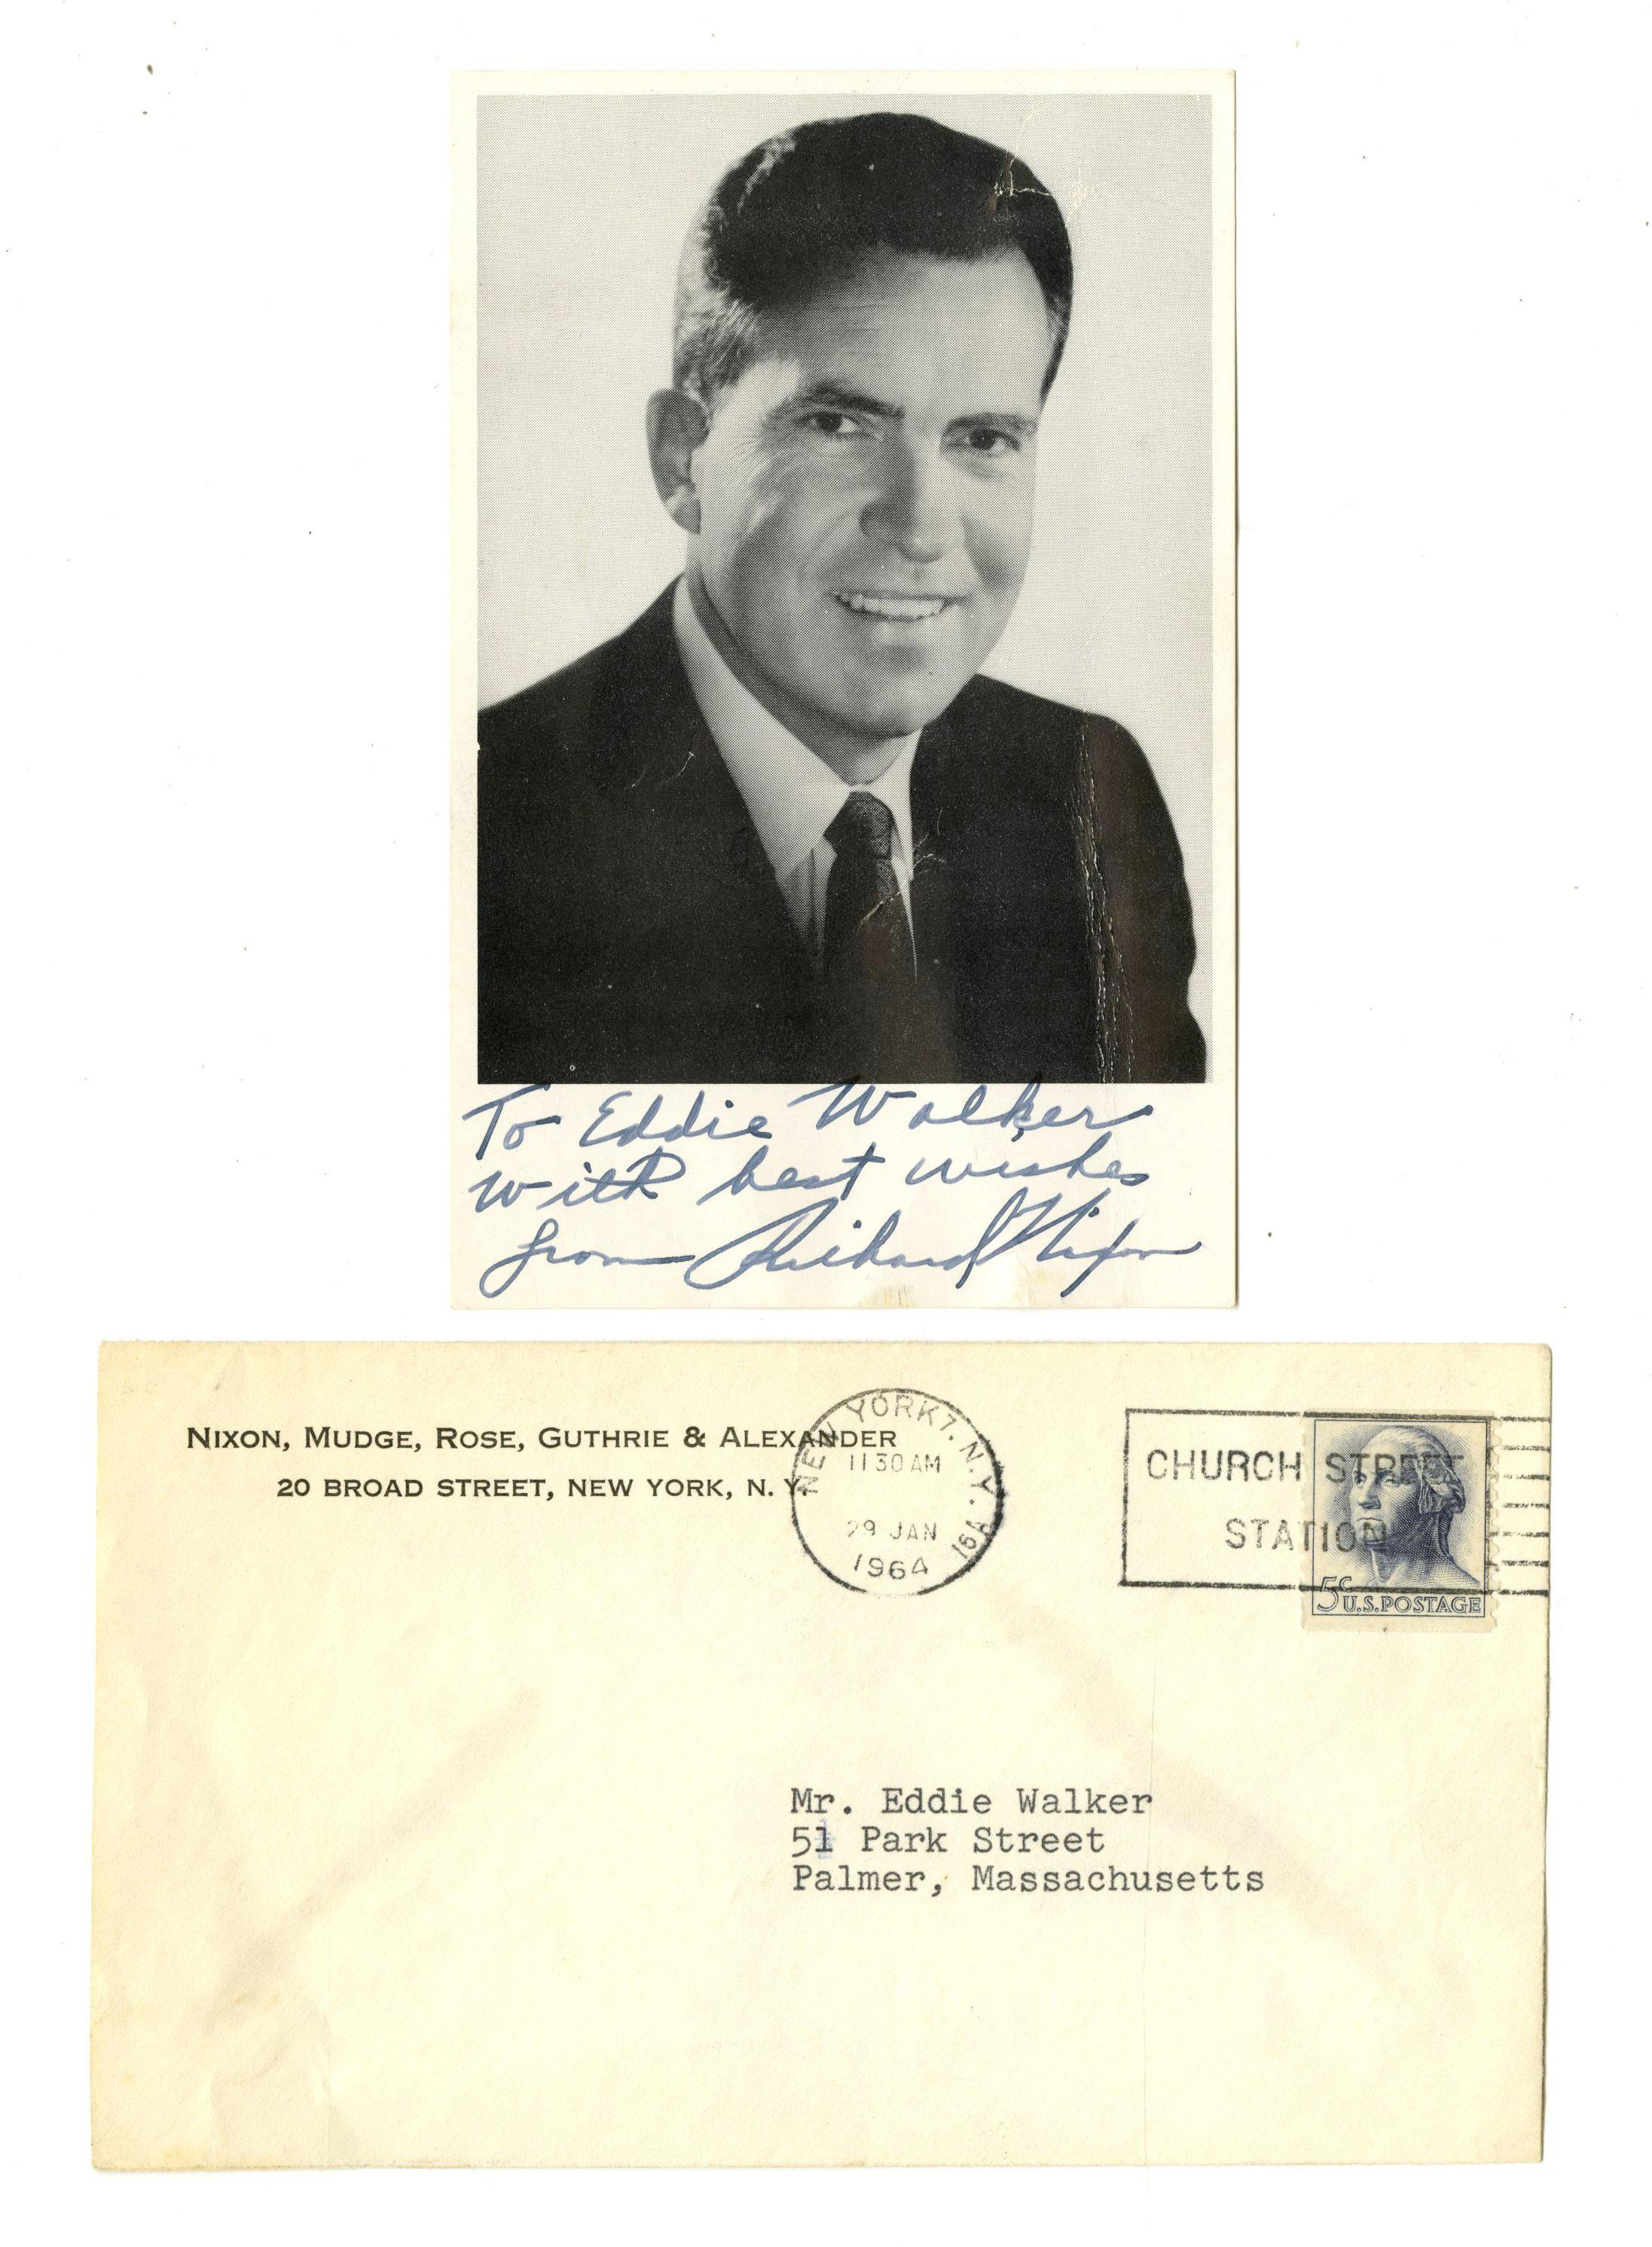 A Young Richard Nixon Inscribes and Signs a Photograph